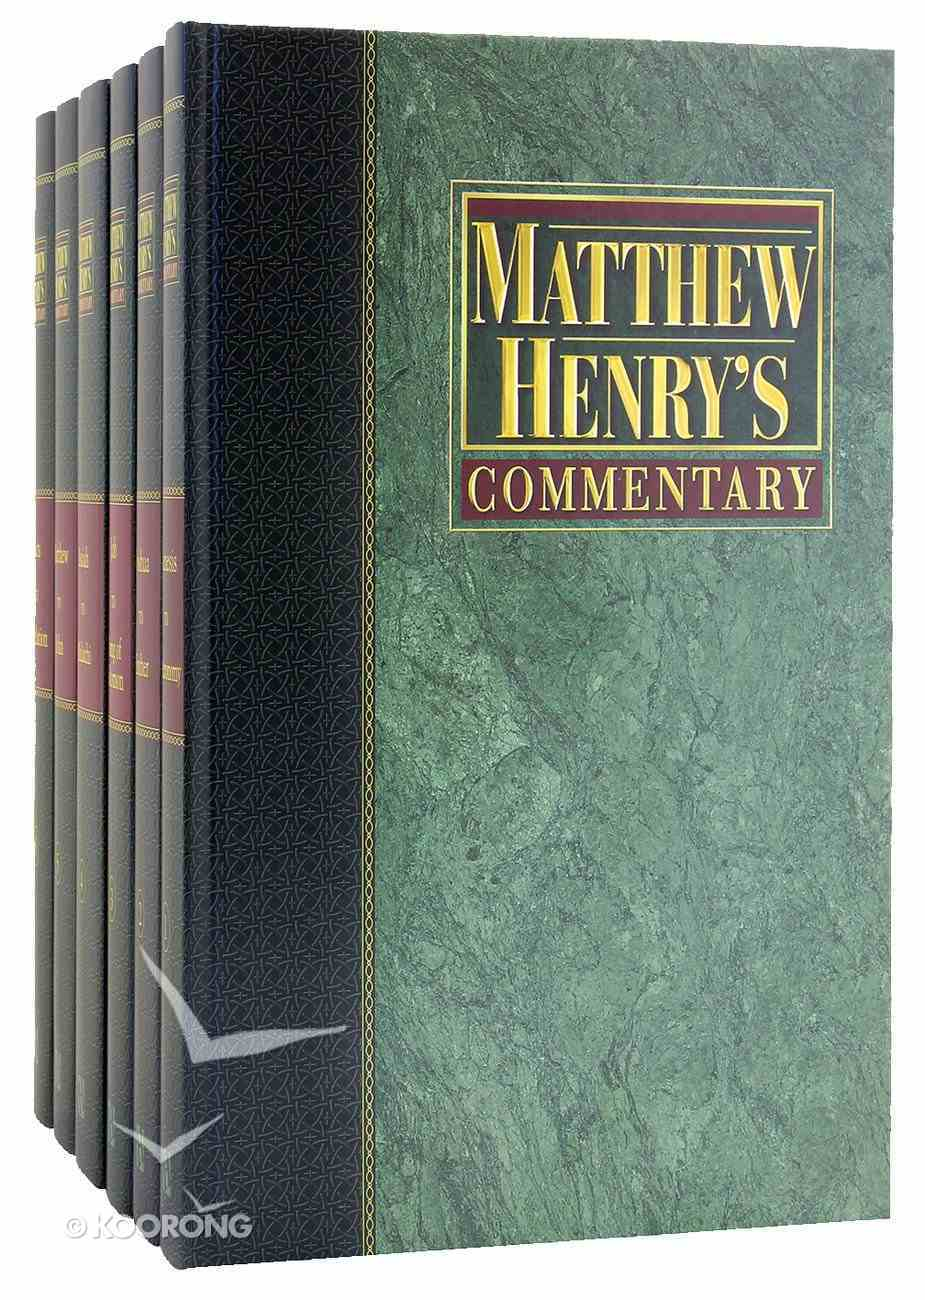 Matthew Henry's Commentary on the Whole Bible (6 Vols Set) Hardback